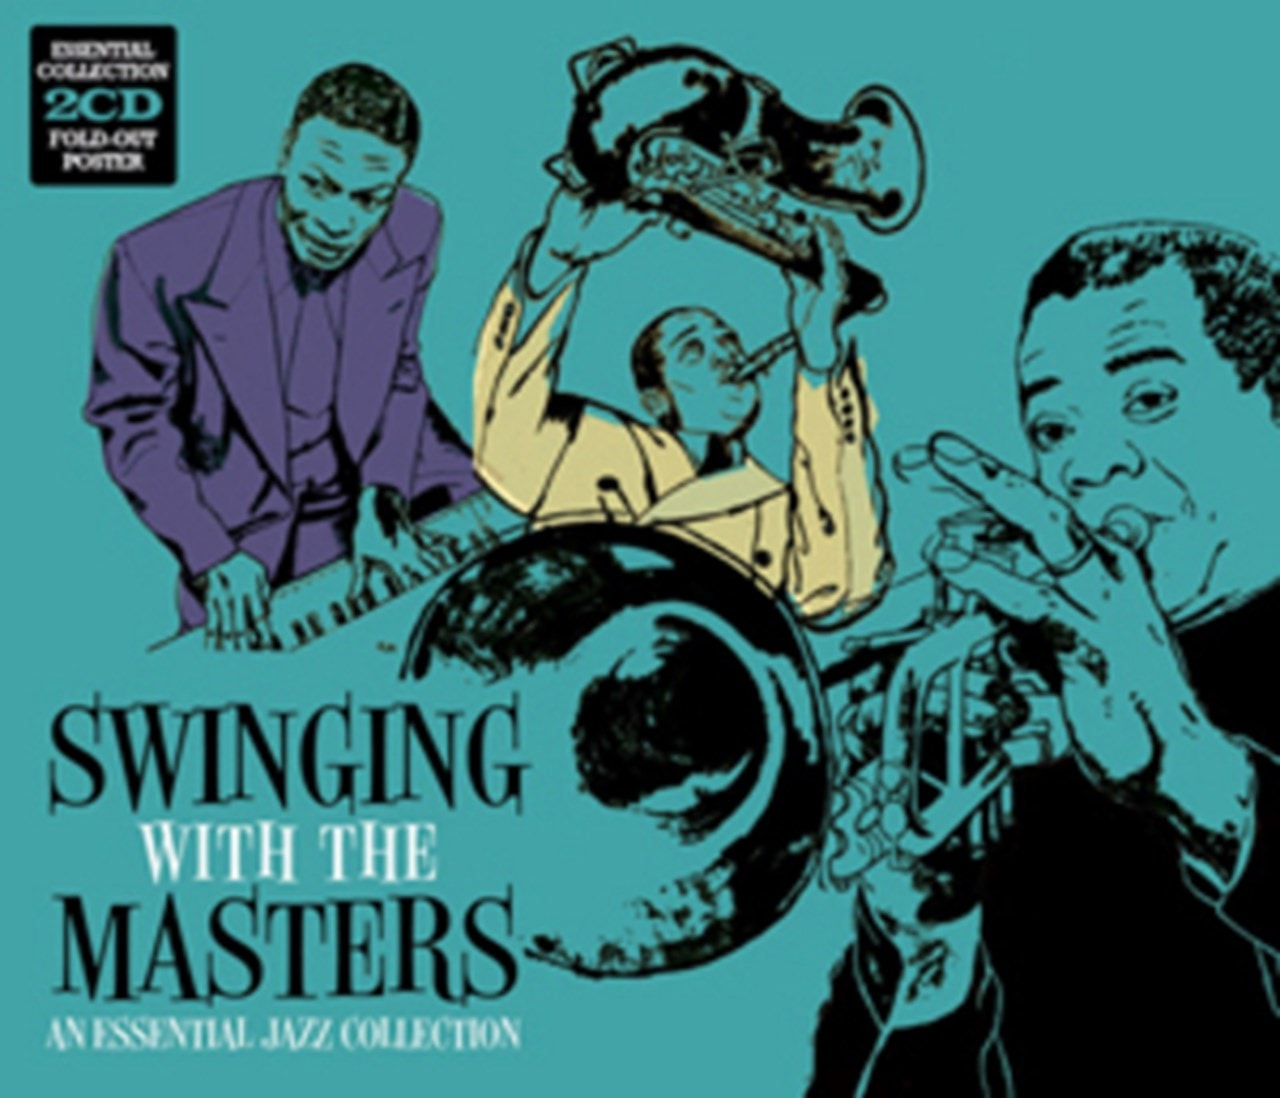 Swinging With the Masters: An Essential Jazz Collection - 1